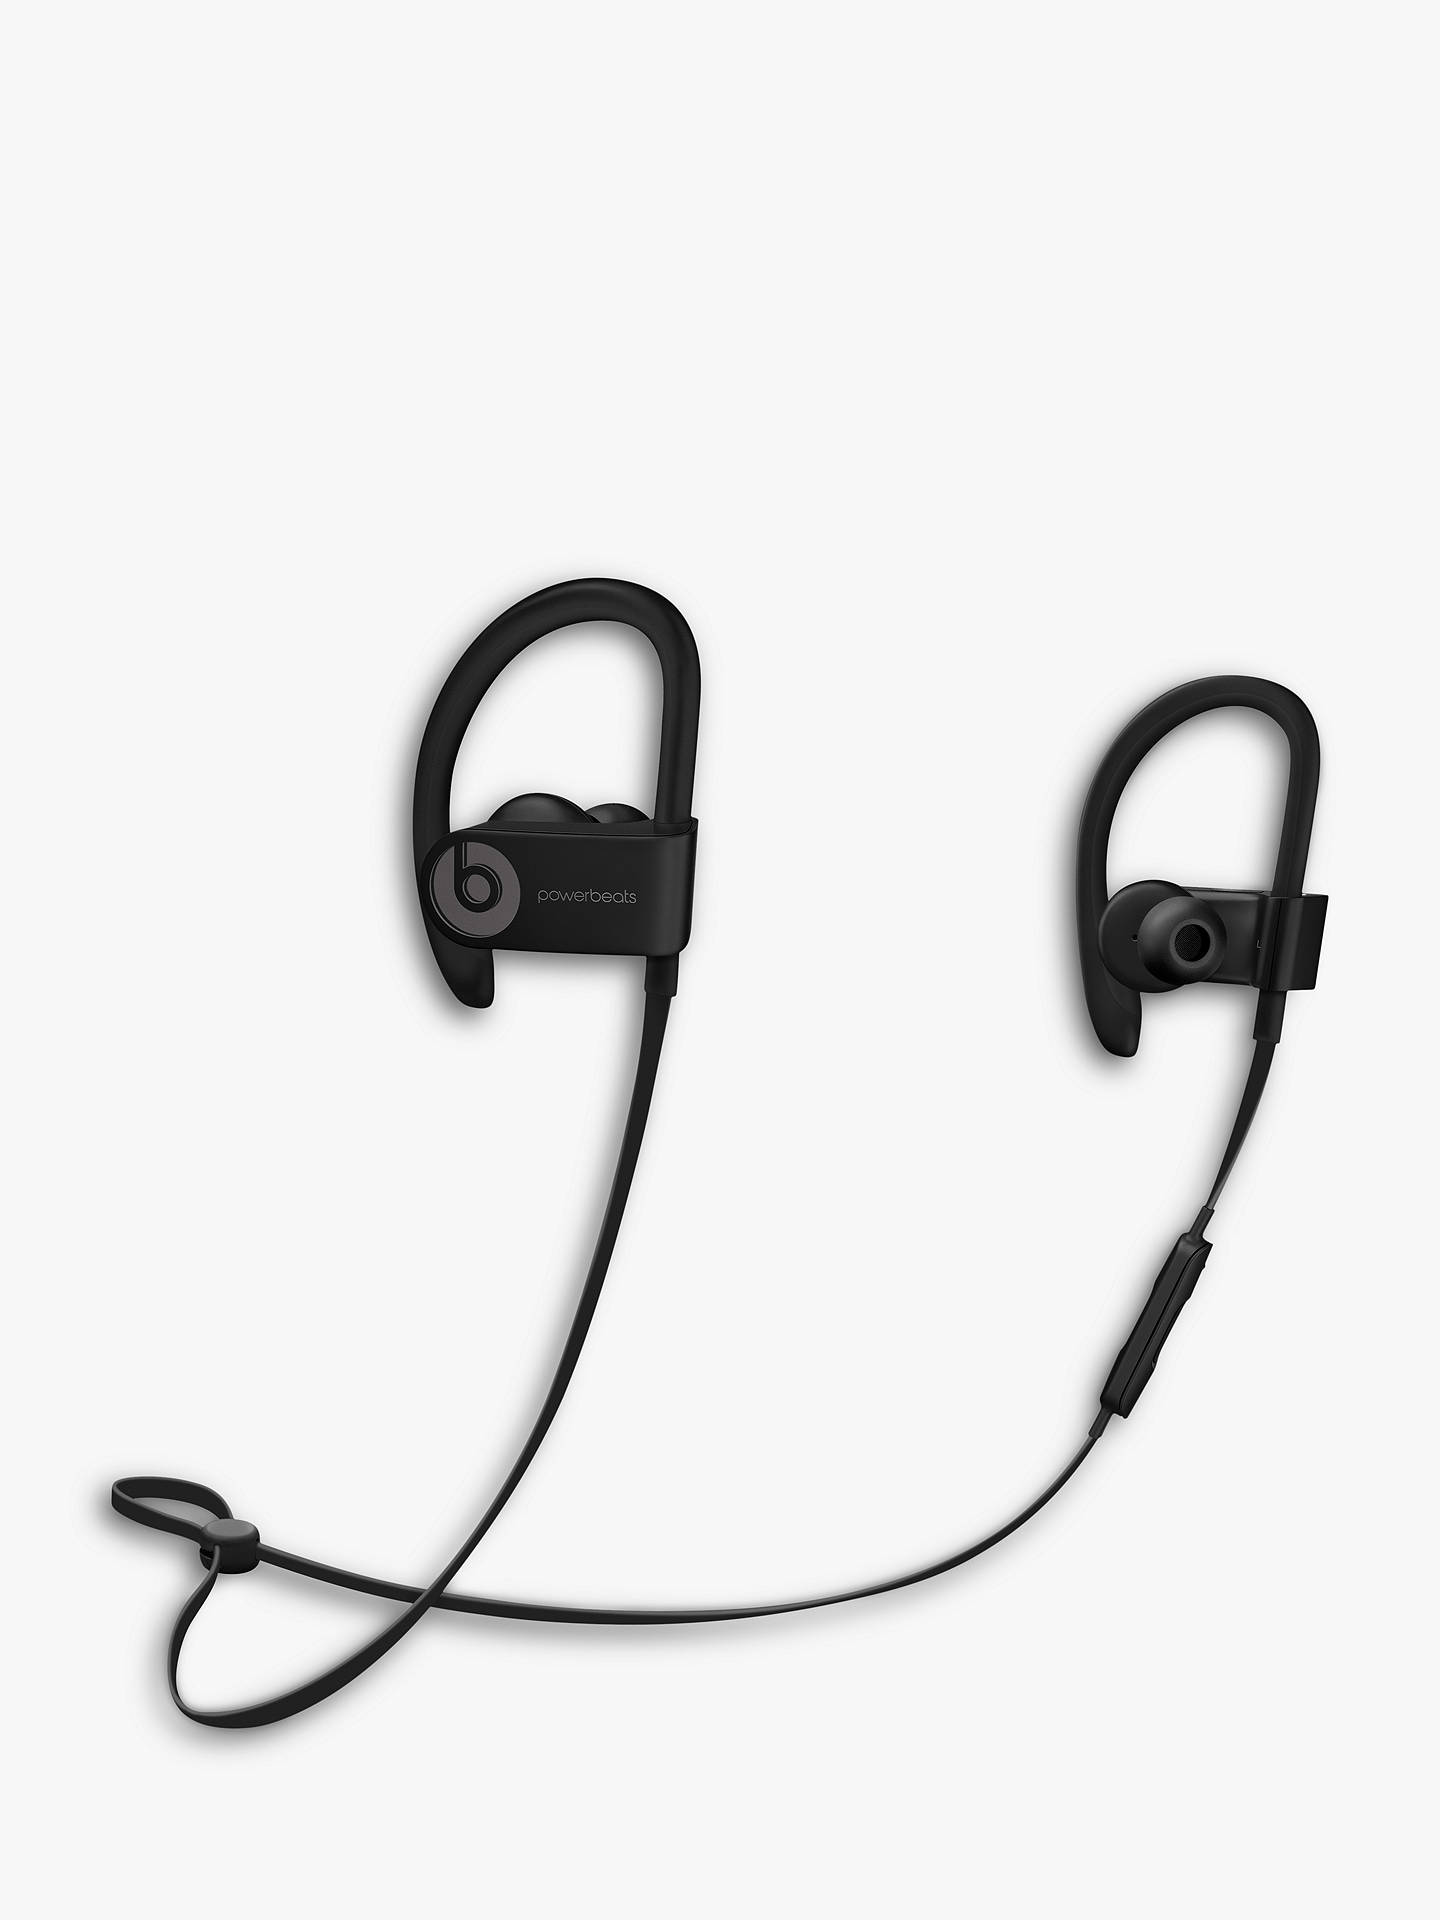 BuyPowerbeats³ Wireless Bluetooth In-Ear Sport Headphones with Mic Remote d0c84943af